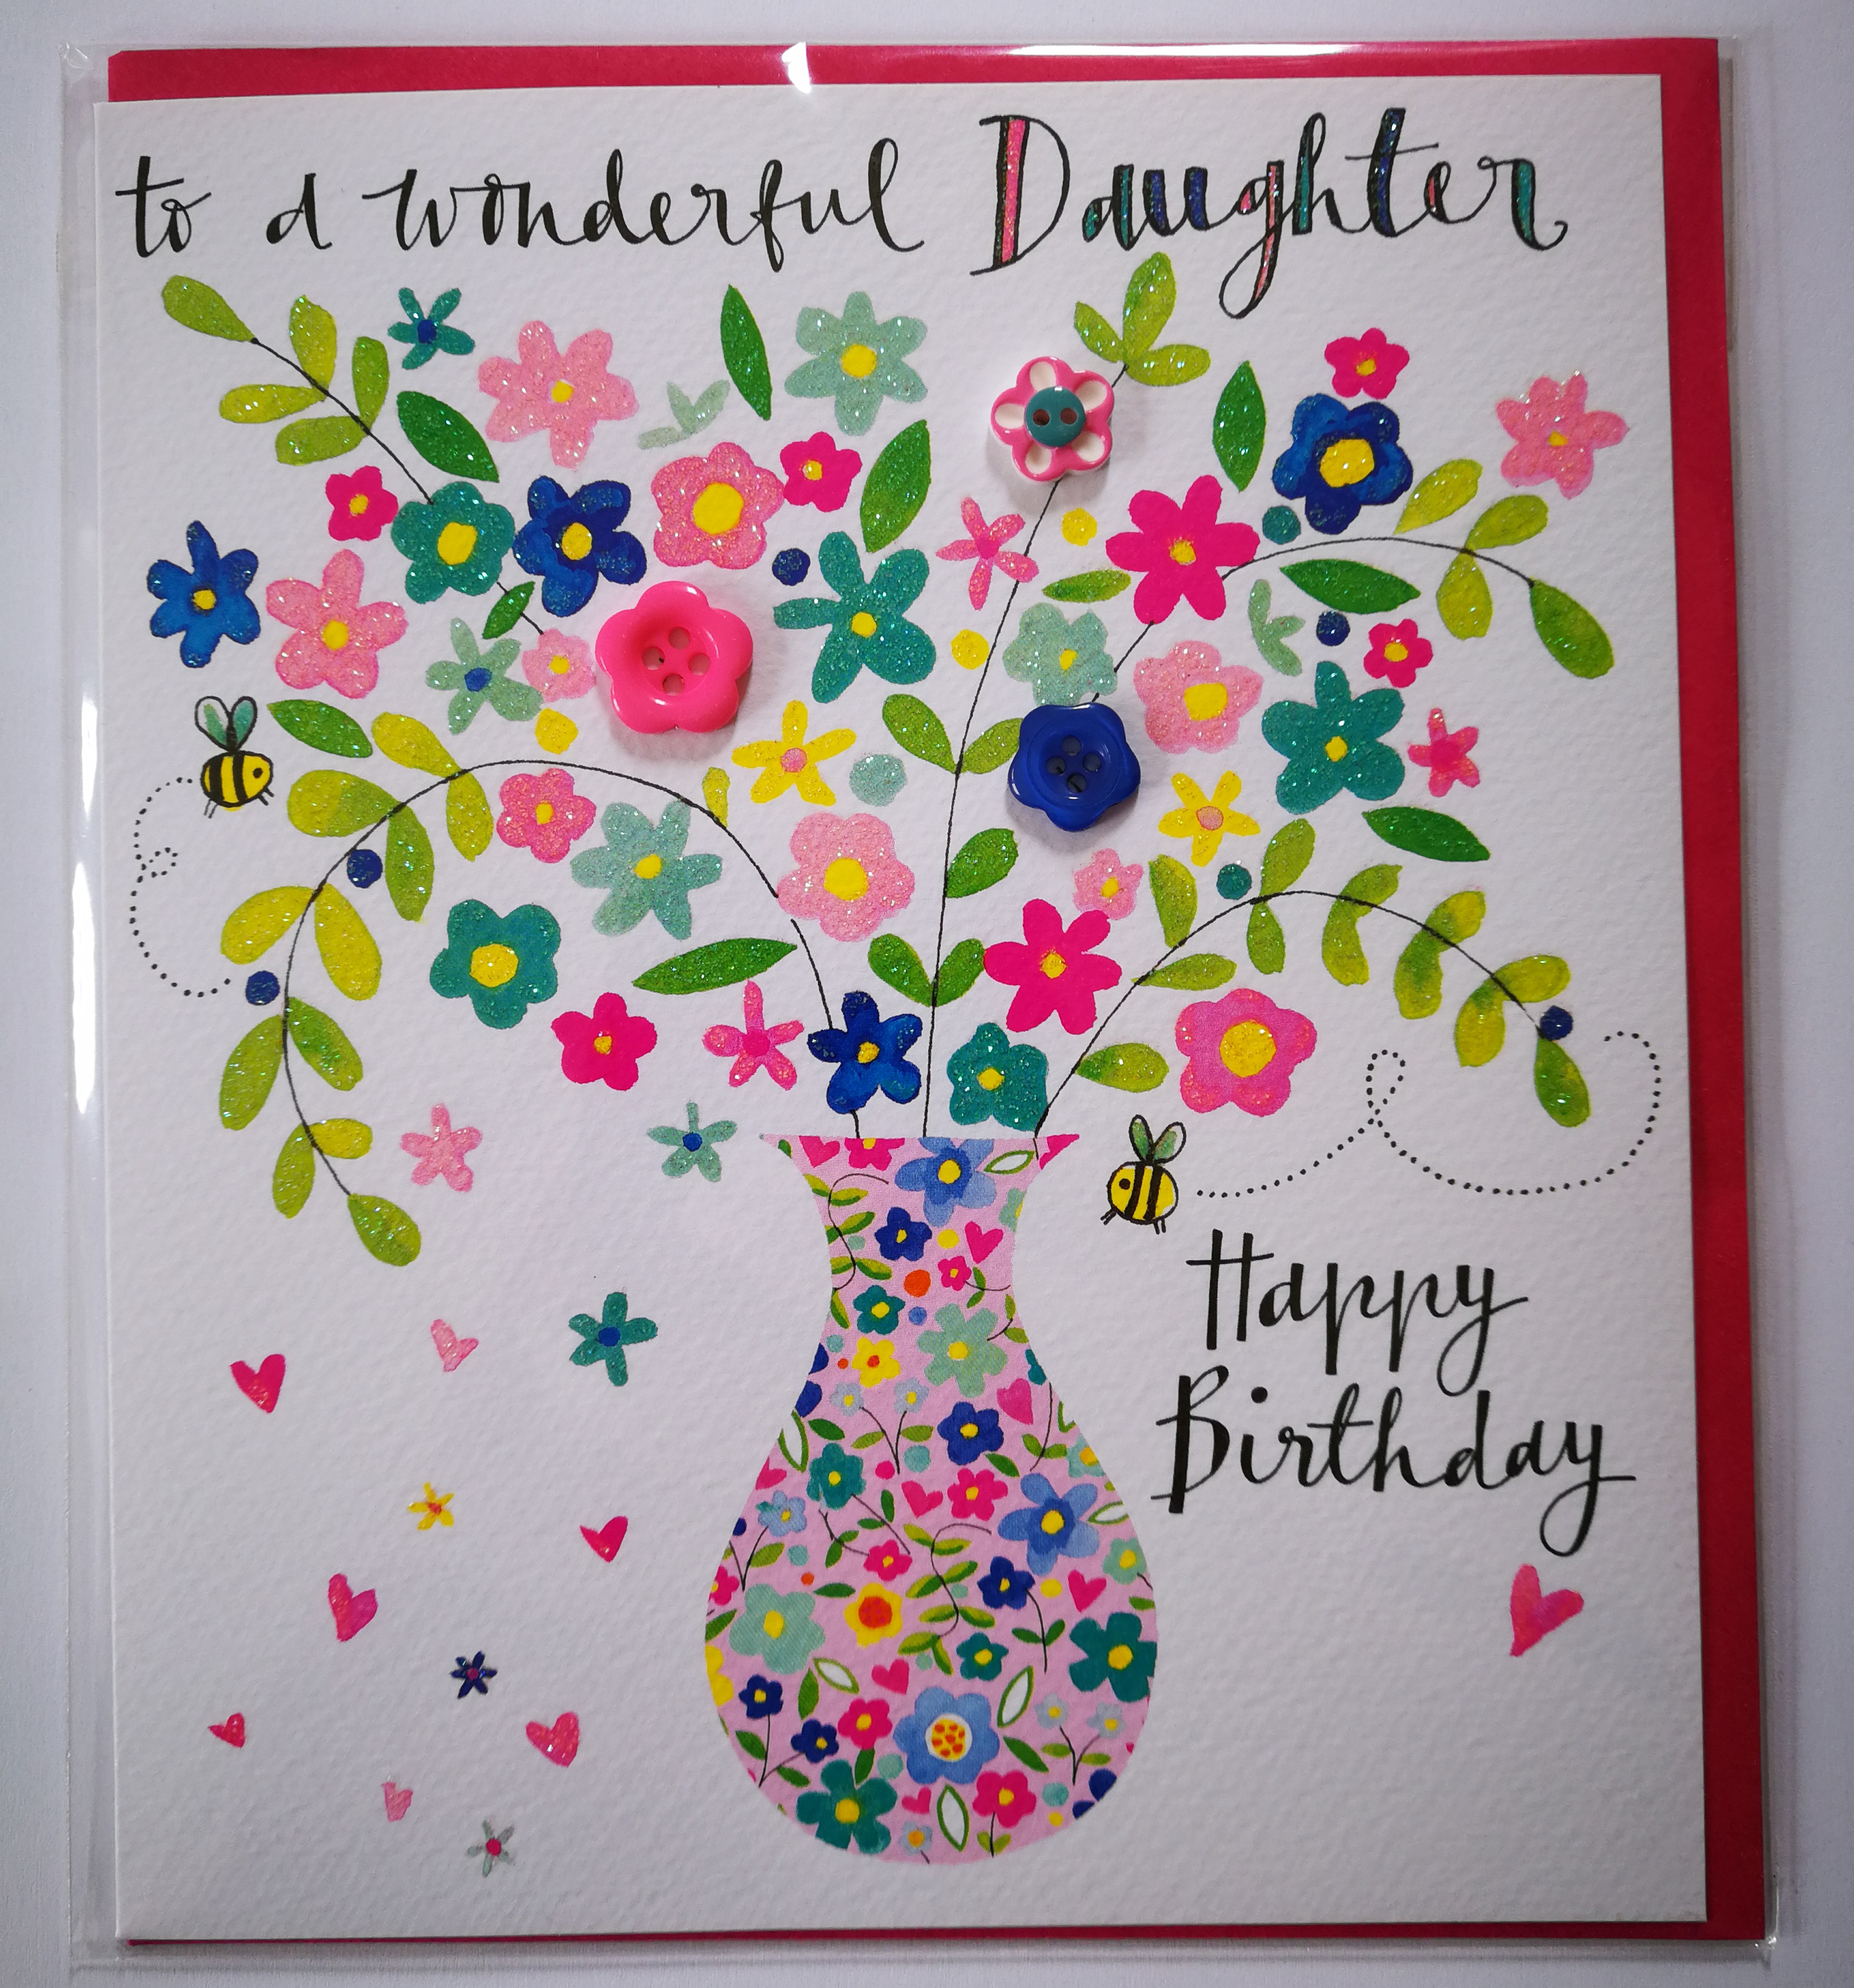 buy beautiful daughter birthday card online with flowers leaves roses botantical birthday cards for daughters from mum and dad parents mum dad at karenza paperie